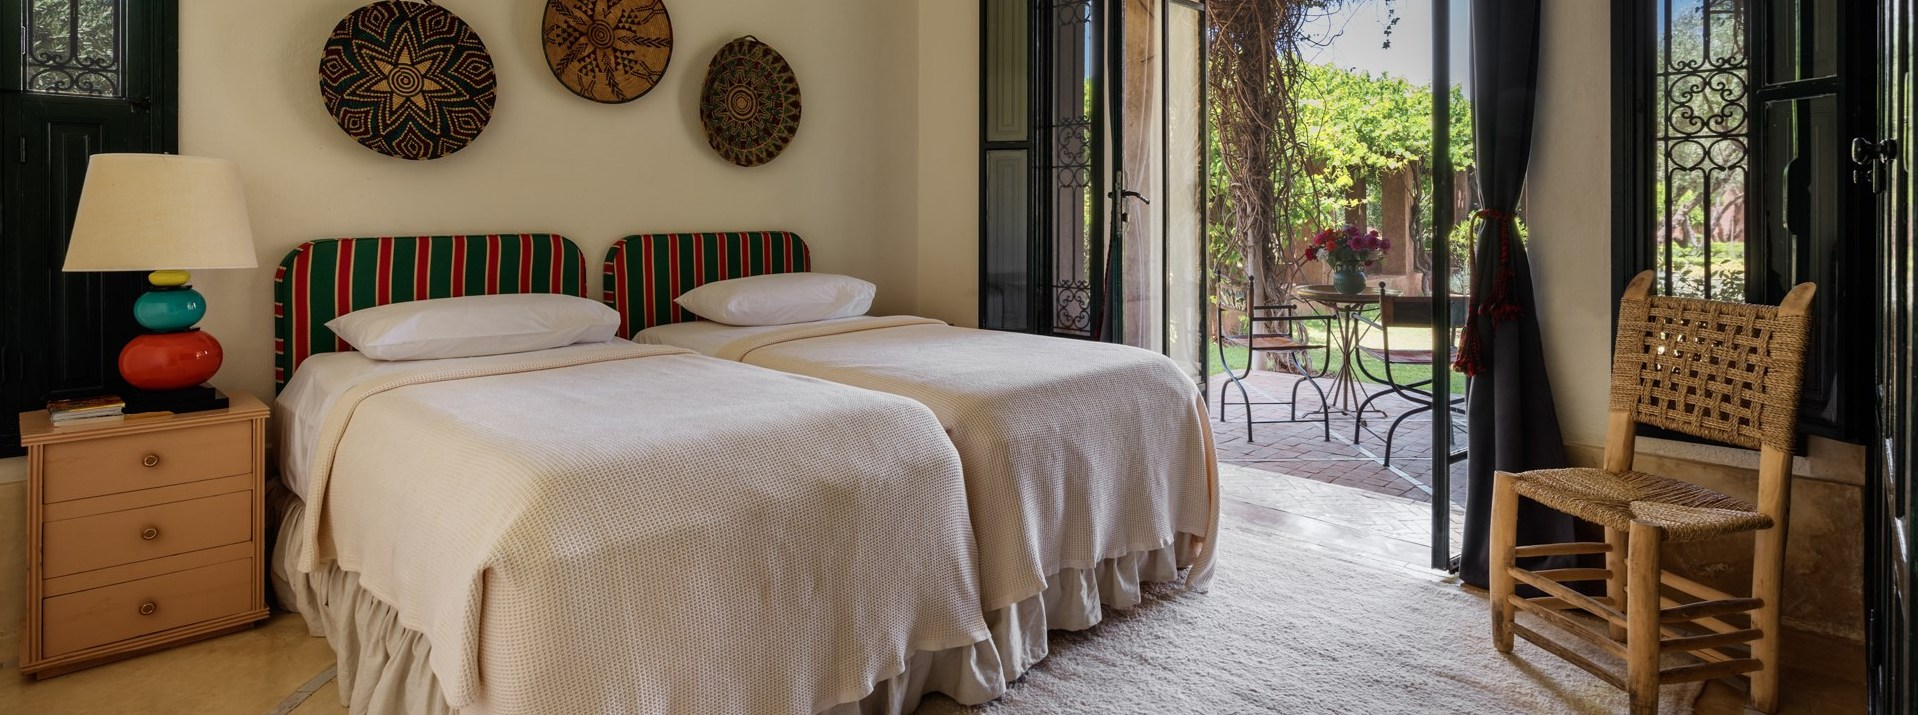 dar-des-roses-blanches-twin-bedroom2